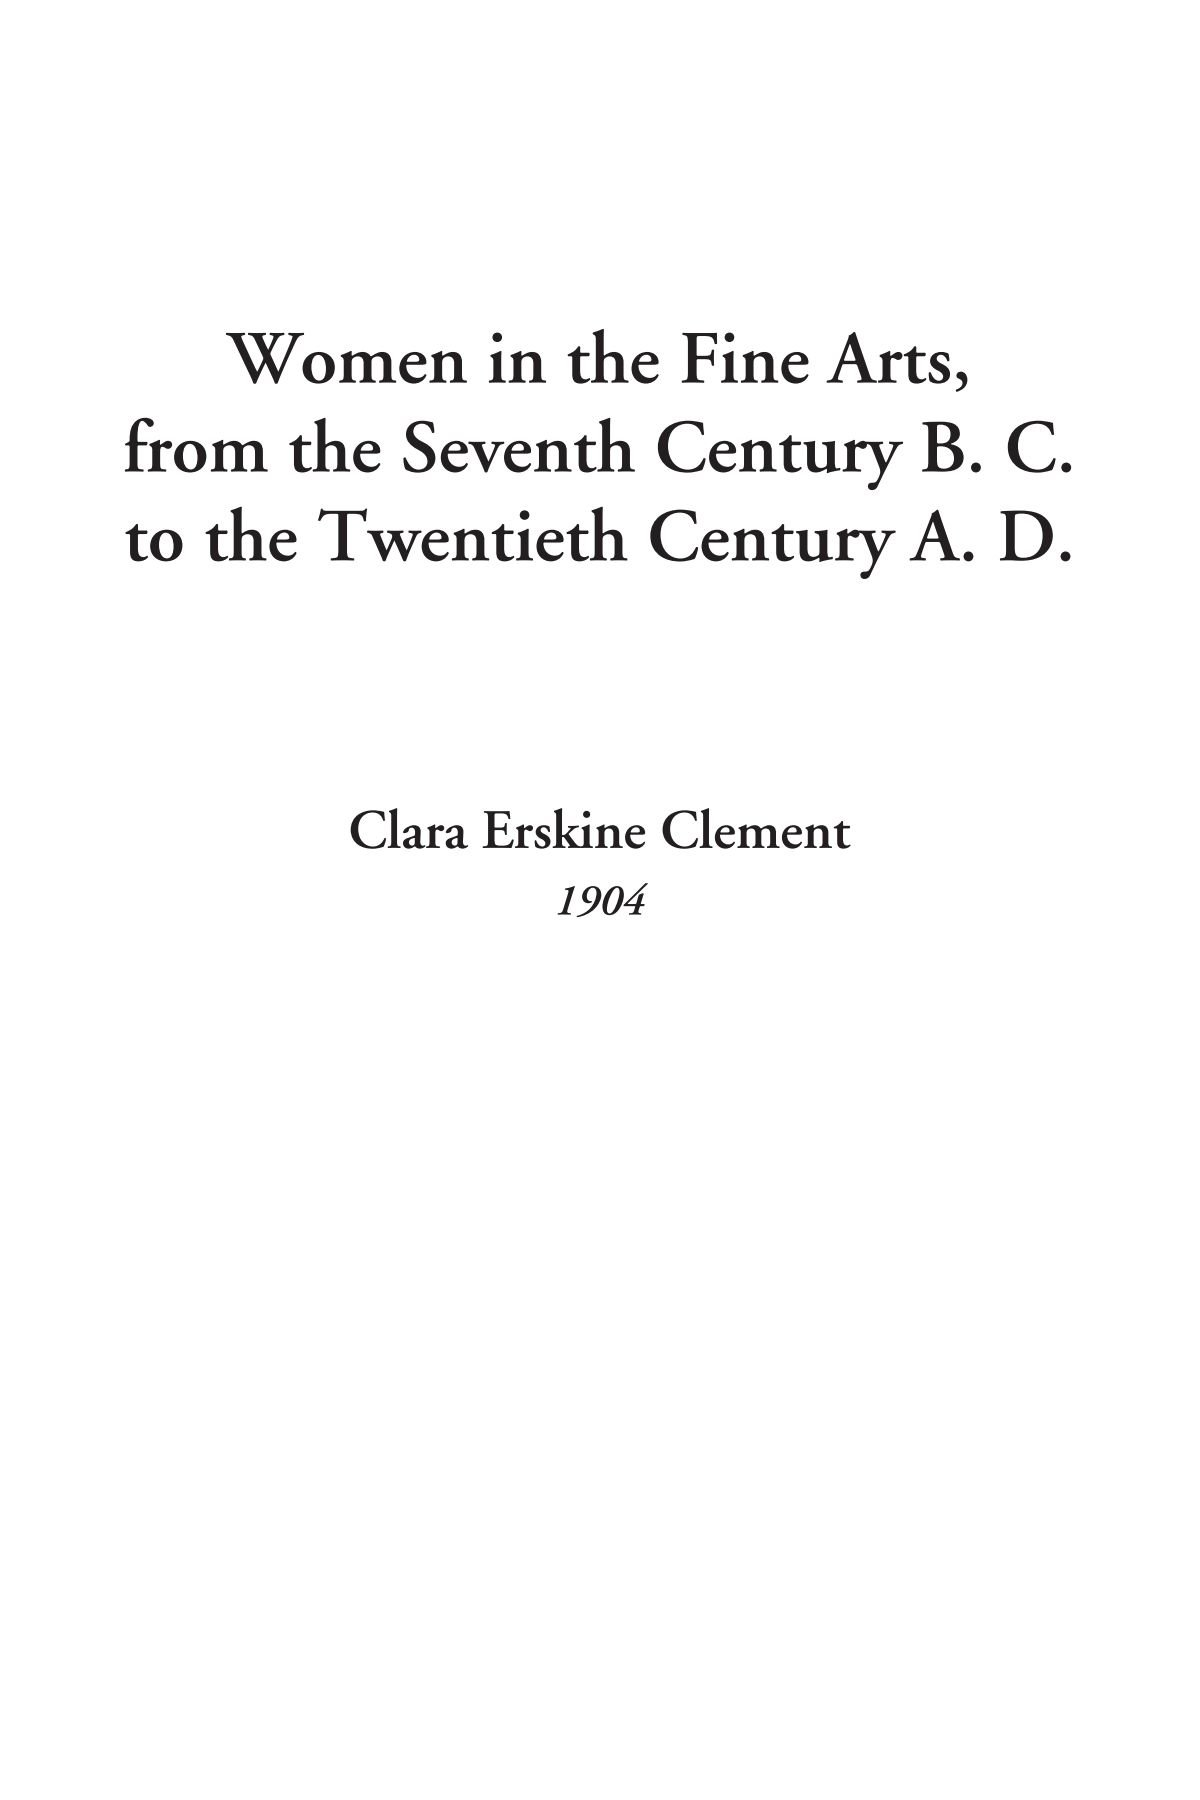 Women in the Fine Arts, from the Seventh Century B. C. to the Twentieth Century A. D. pdf